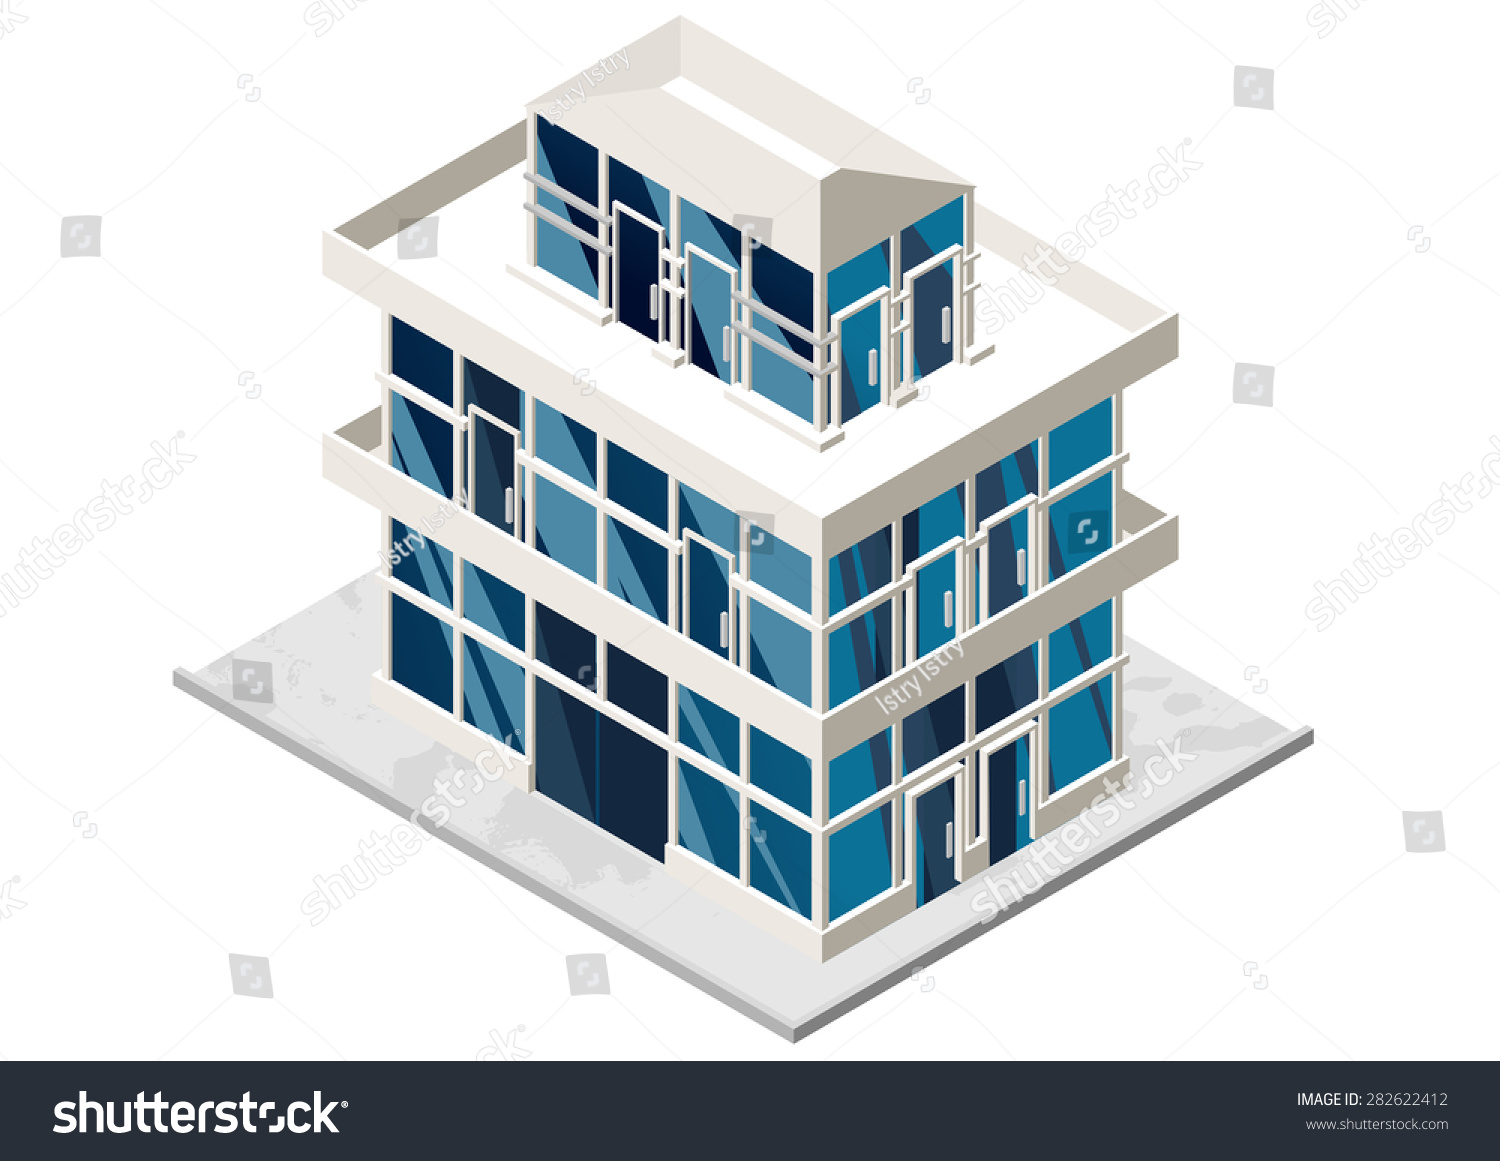 Vector illustration 3d building isometric view stock House building app